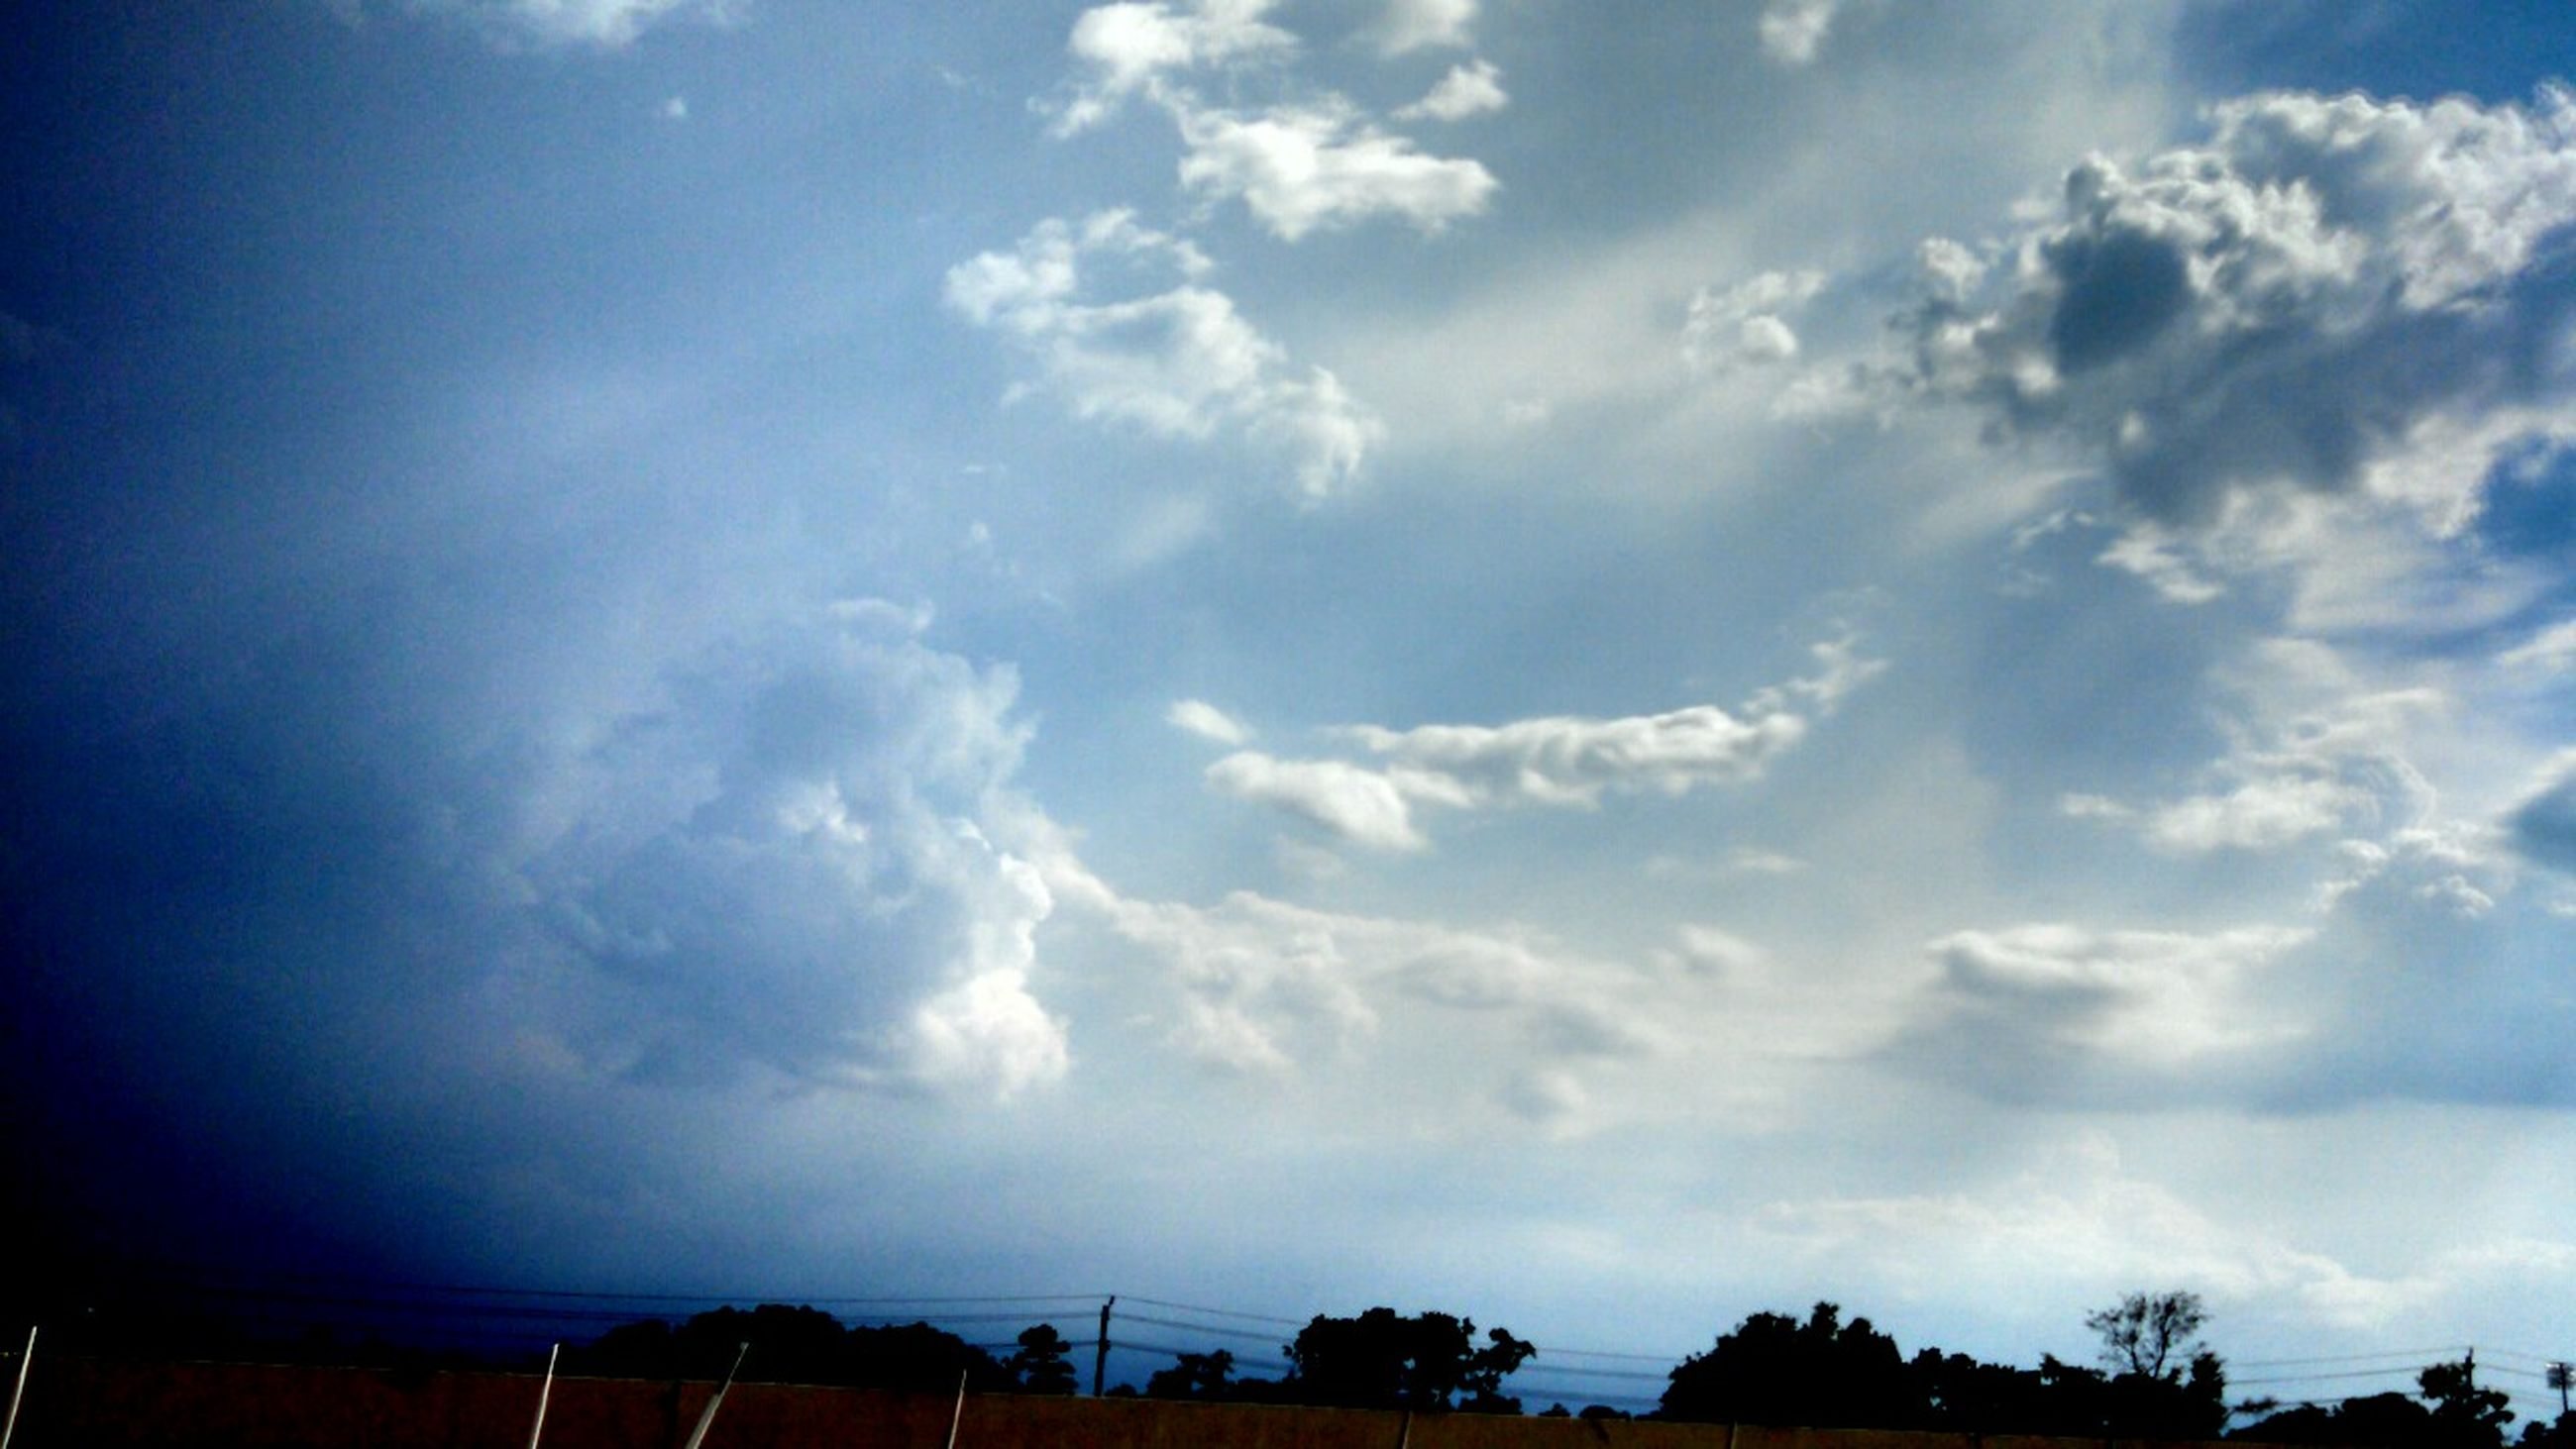 sky, cloud - sky, low angle view, blue, cloud, cloudy, built structure, beauty in nature, nature, building exterior, scenics, tranquility, silhouette, architecture, sunlight, outdoors, tranquil scene, no people, tree, day